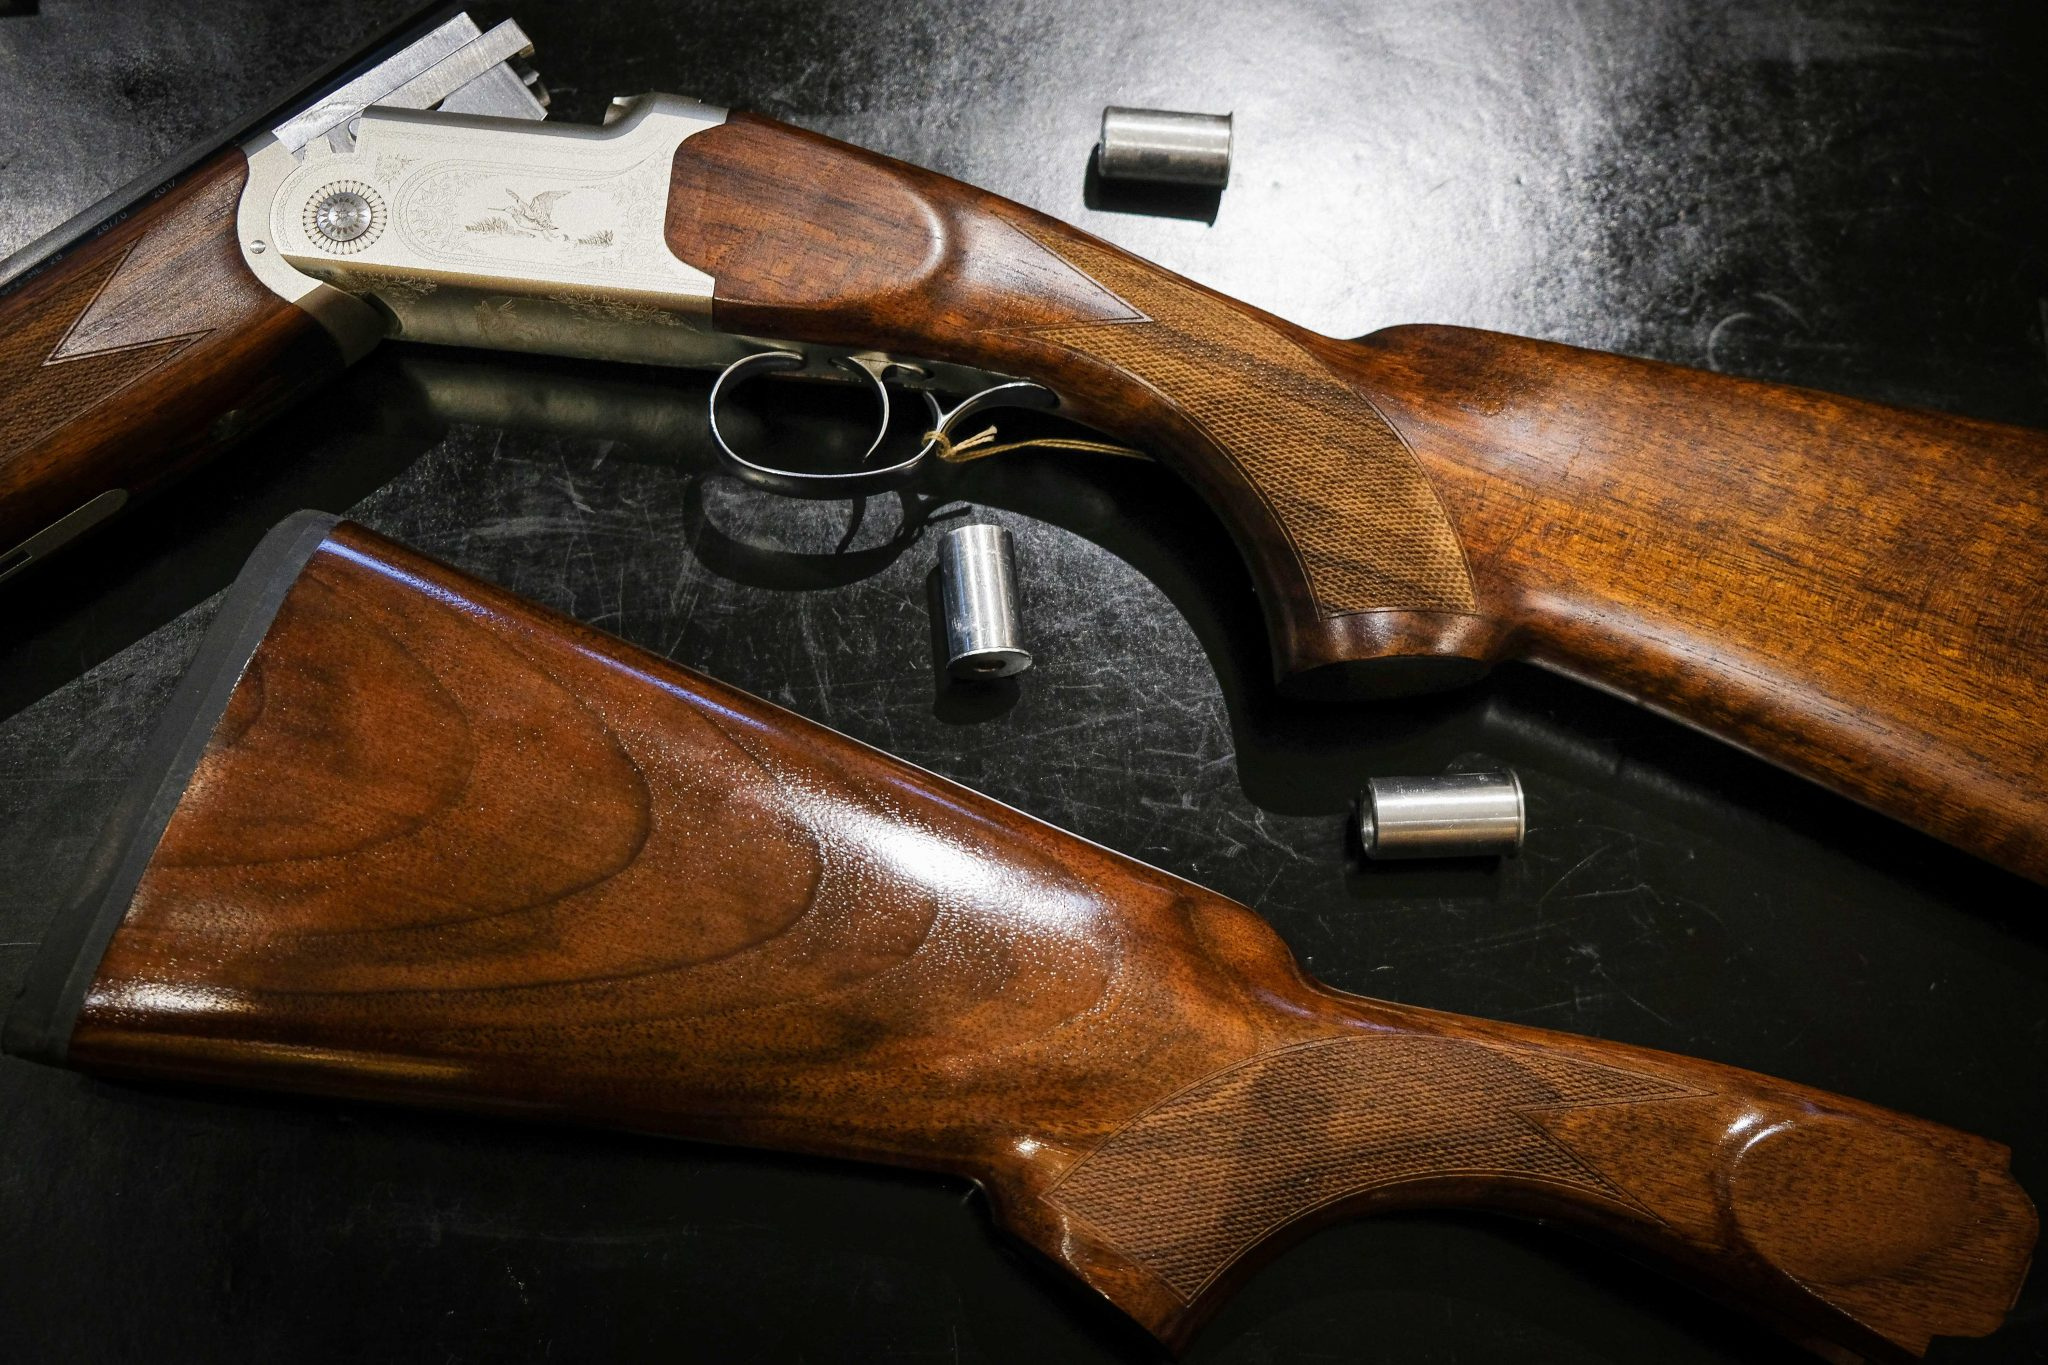 A Yildiz junior shotgun stock available to purchase at Sportarm at Lady's Wood